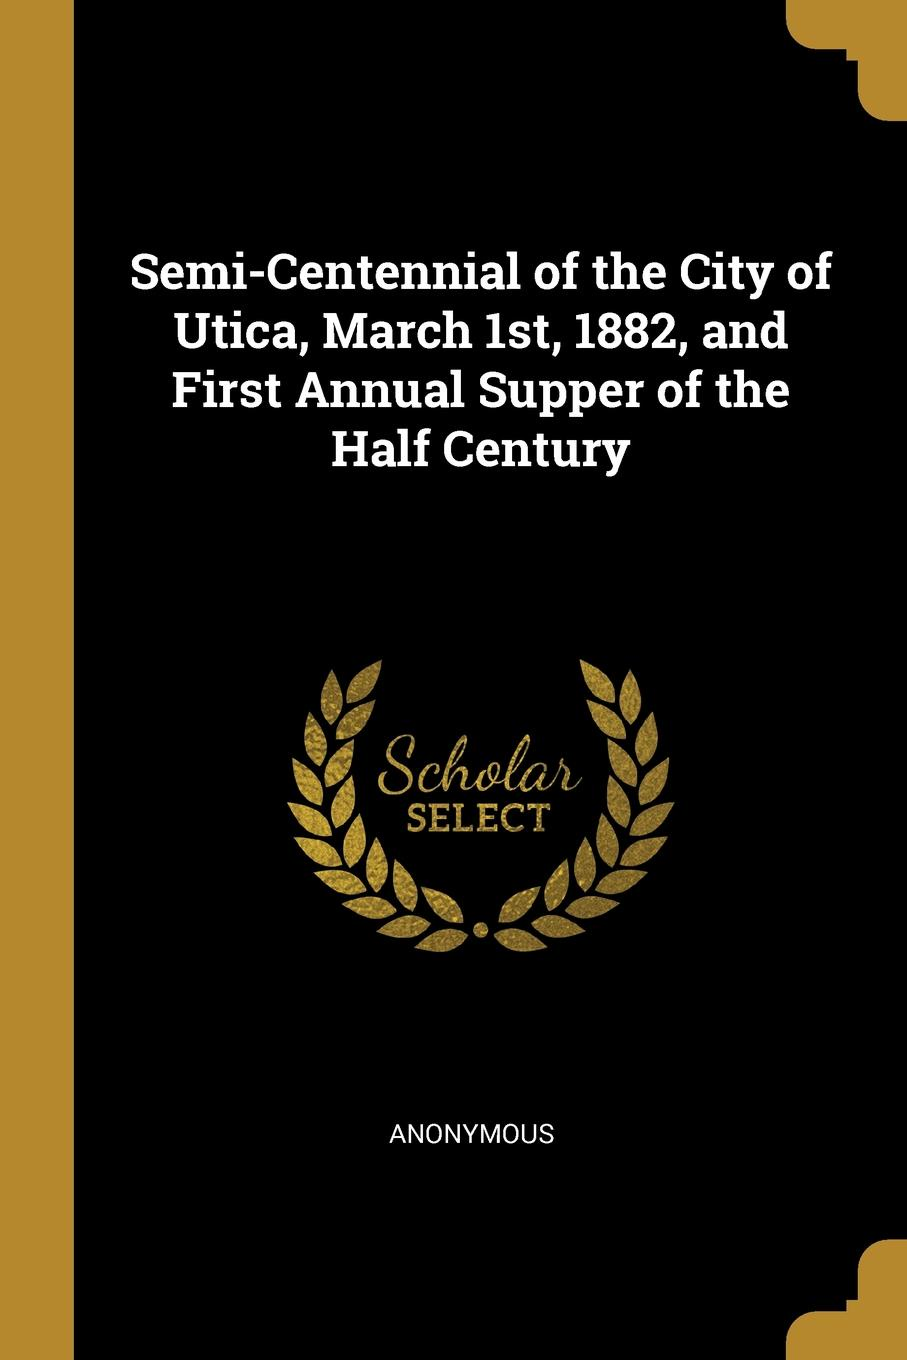 M. l'abbé Trochon Semi-Centennial of the City of Utica, March 1st, 1882, and First Annual Supper of the Half Century